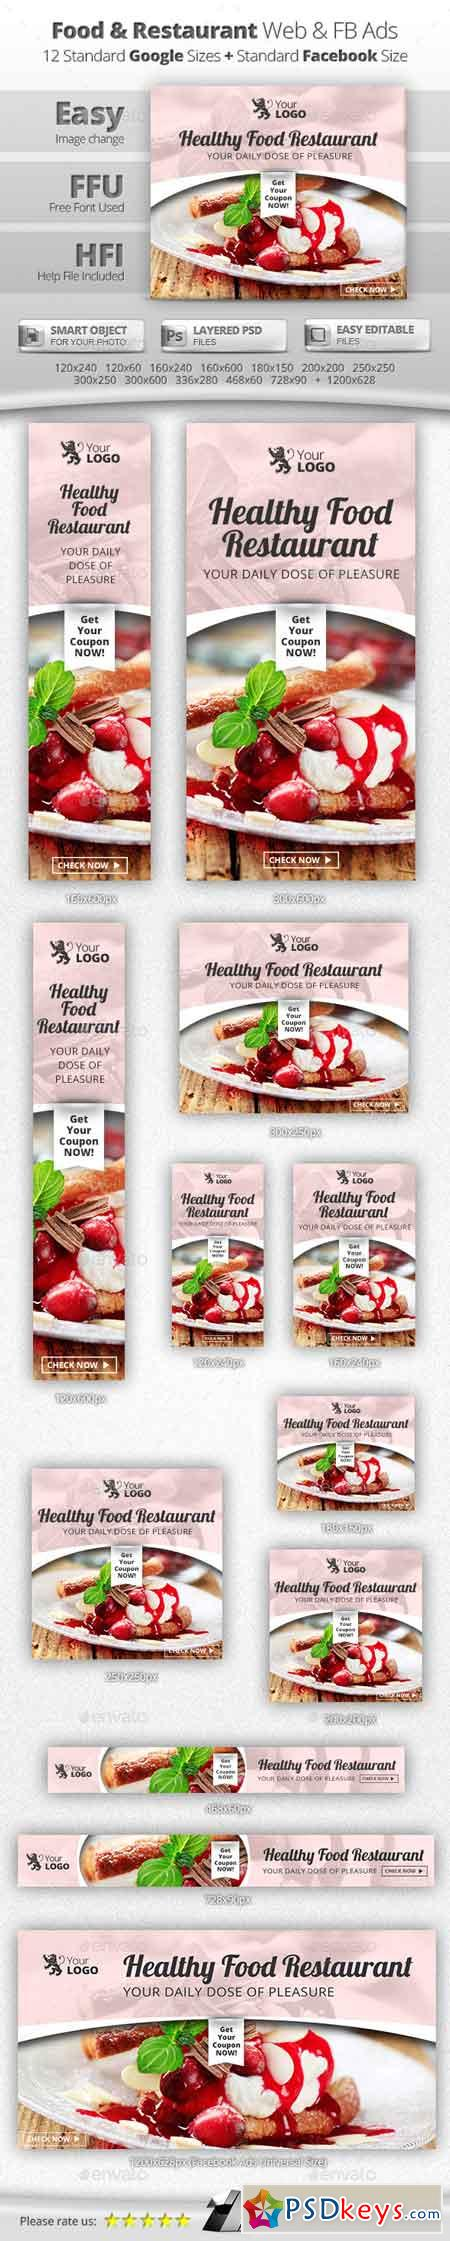 Food & Restaurant Web & Facebook Banners